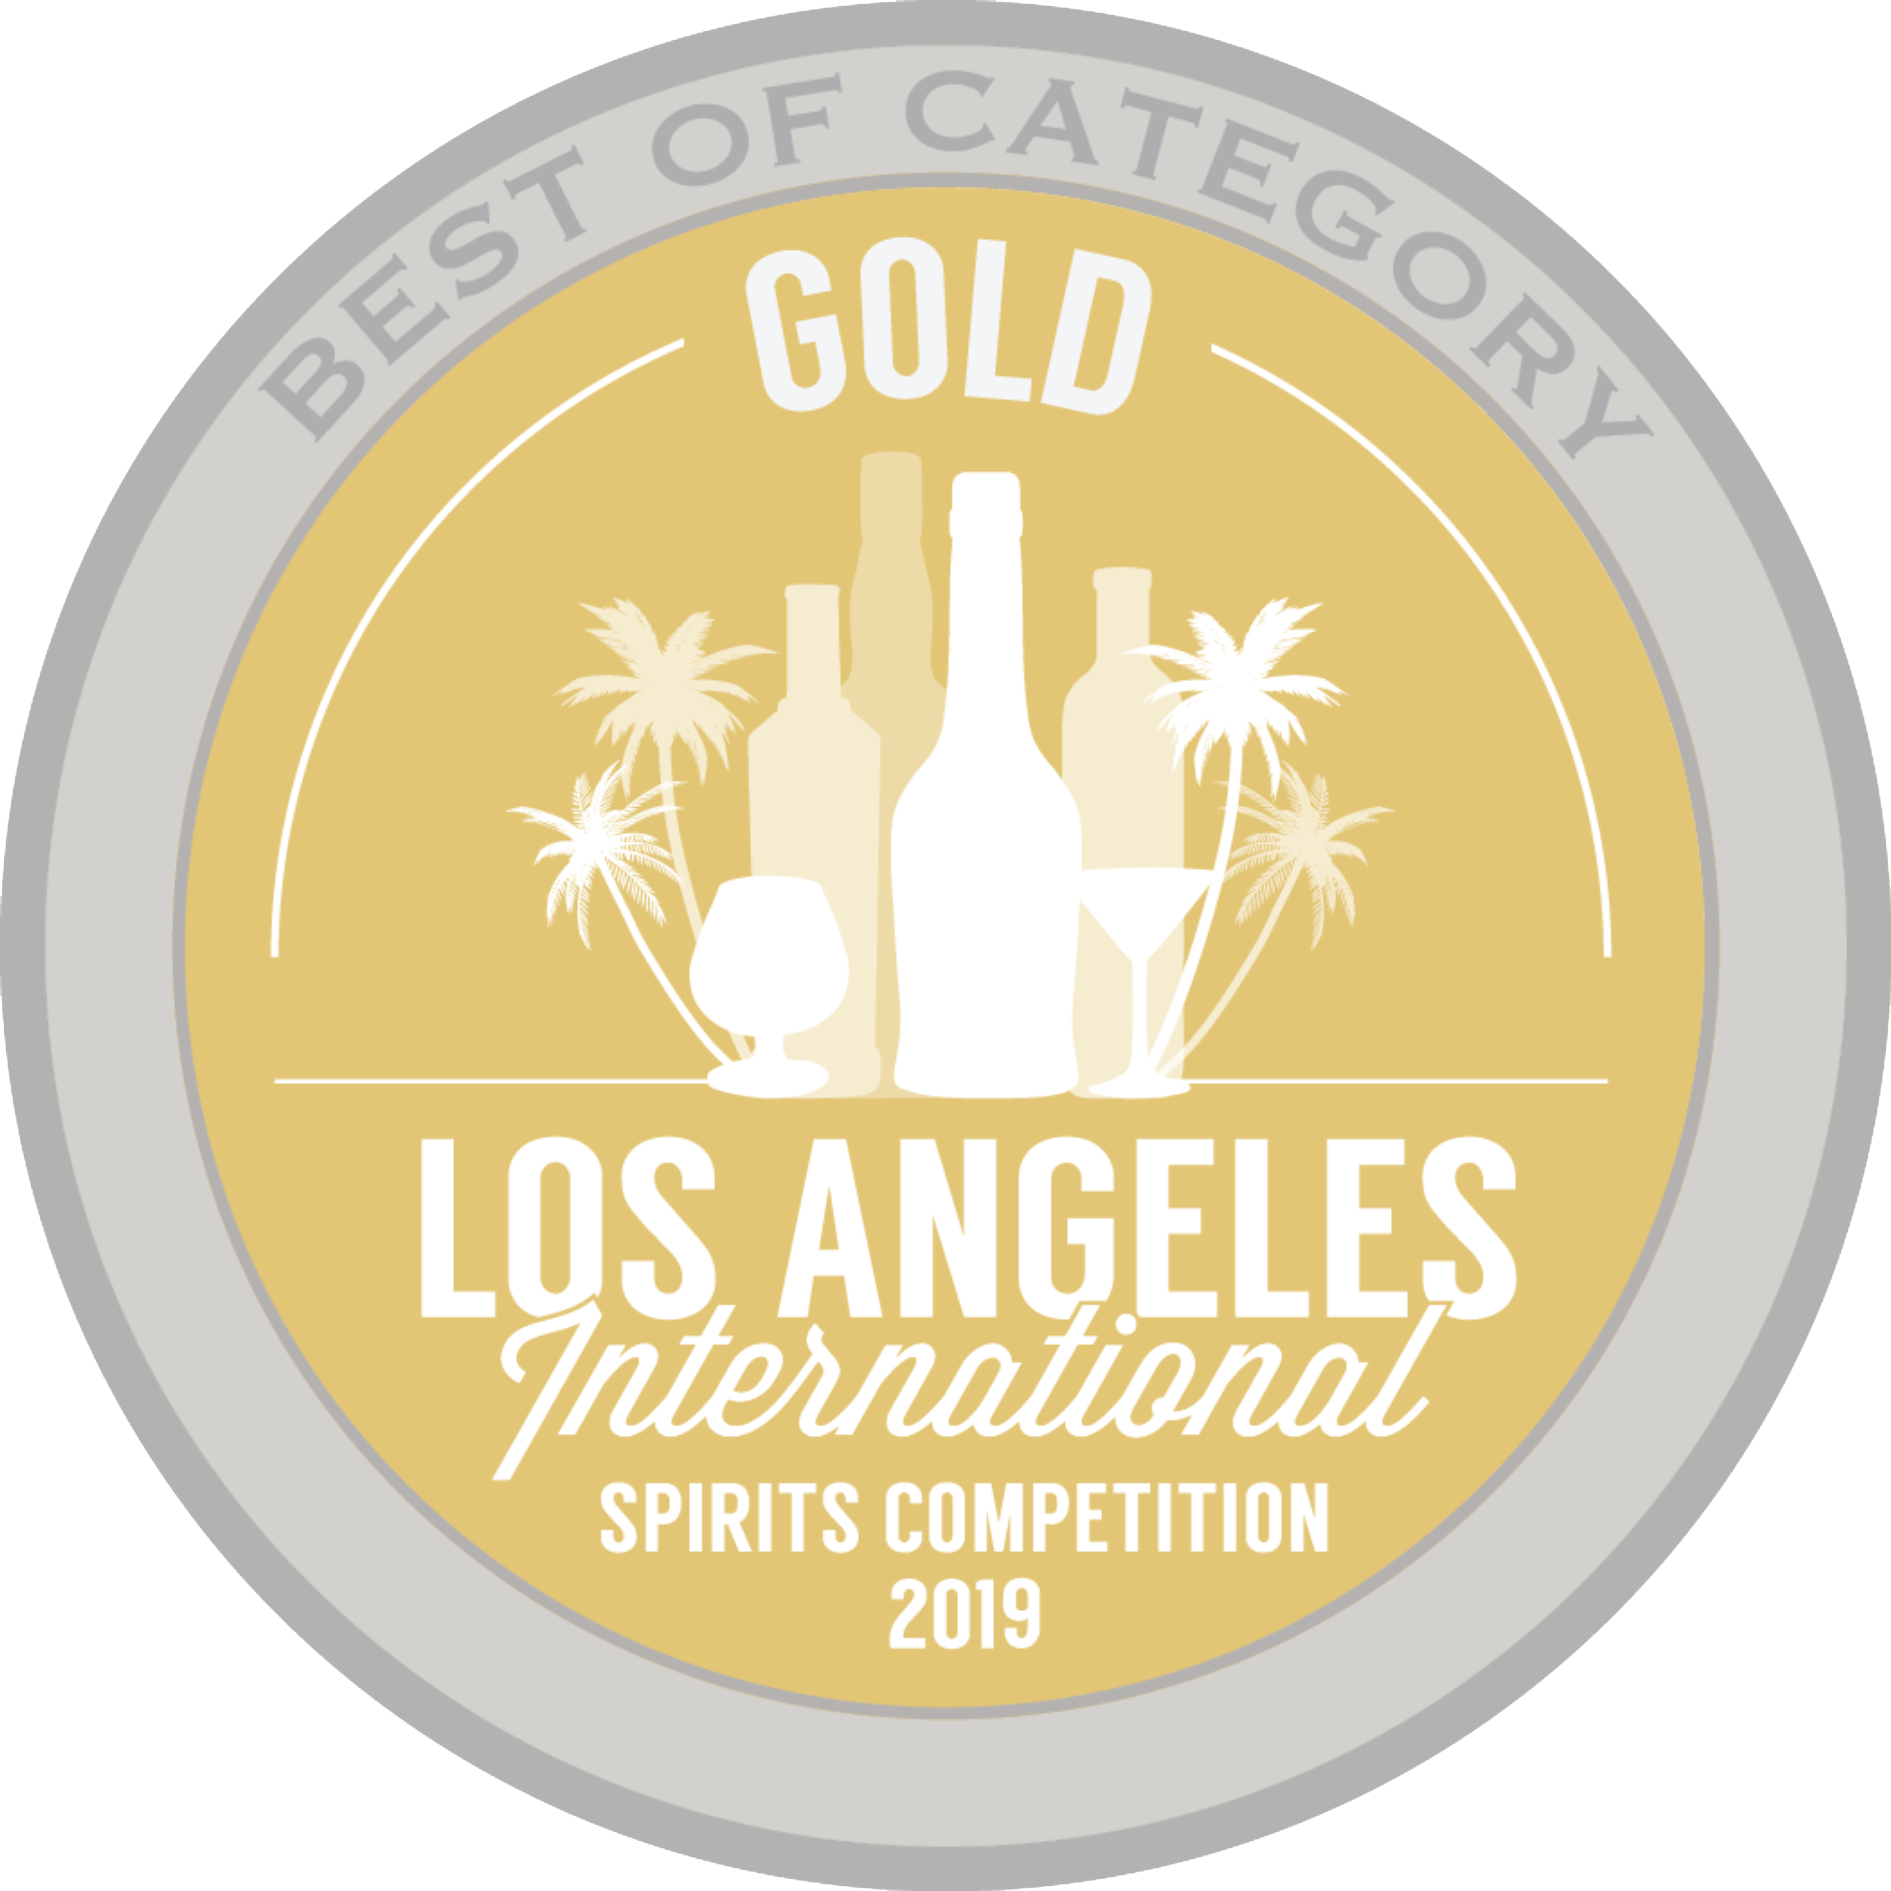 2019 Los Angeles International Spirits Competition Best of Category Gold Award